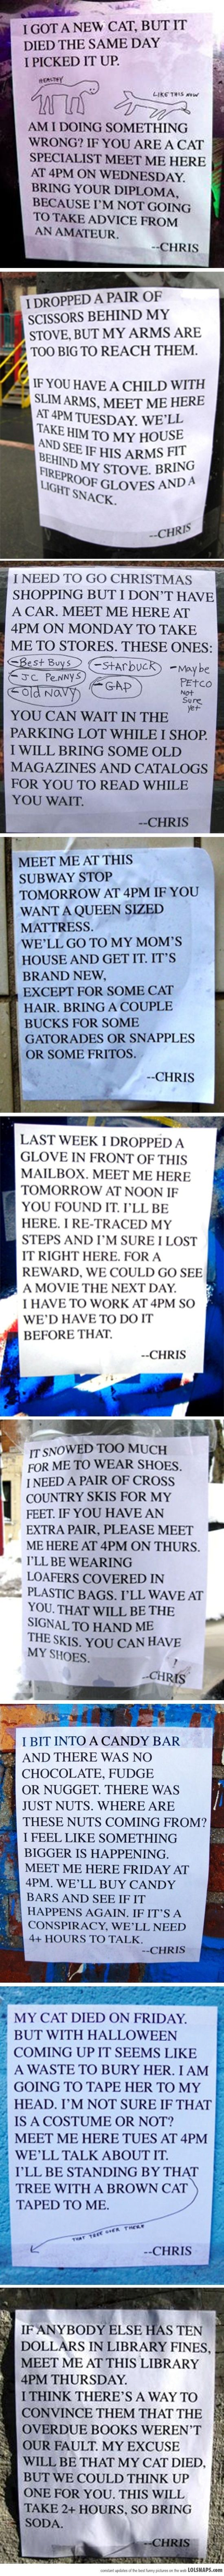 I'm pretty sure I'd like to meet Chris. im dying right now....